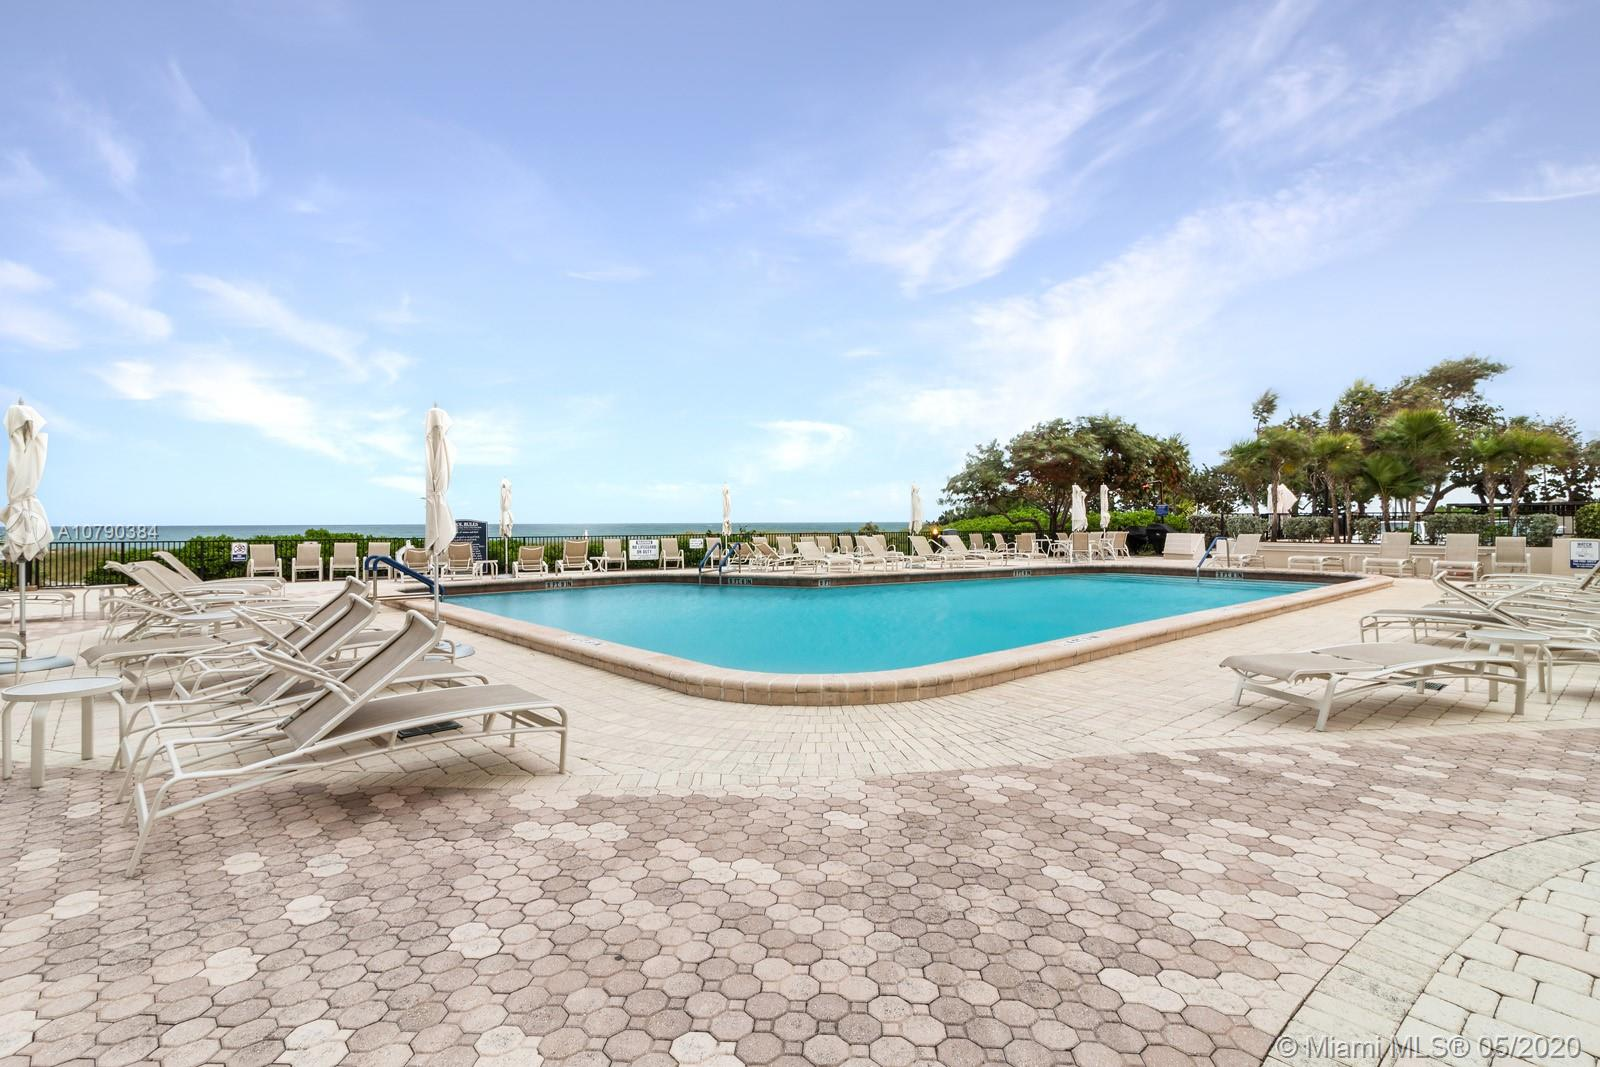 RARELY AVAILABLE … HURRY AND MAKE THIS DIRECT OCEAN NE CORNER 2BR/2BA UNIT W/ EXTRA LARGE BALCONY YOURS. ON THE 5TH FLR AT OCEAN PLACE IN LAUDERDALE BY THE SEA. RESORT LIVING AT IT'S BEST. GRANITE COUNTER TOPS. TILED & CARPETED FLRS. *1 GARAGE SPOT & VALET PARKING*. BEST VIEWS IN BLDG! CAN RENT FIRST YEAR, TWICE A YEAR W/MIN. 30 DAYS!! OCEAN PLACE IS A TASTEFULLY UPDATED AND WELL-MAINT. BLDG W/24-HR SECURITY & CONCIERGE. AMENITIES GALORE! MAINT. INCL. A/C, ELECTRIC, 24-HR SECURITY, INSURANCE, WATER, BASIC CABLE, VALET PARKING, HEATED POOL, ON-SITE MGMT, GYM, AEROBICS, CLUB & THEATER ROOMS, SAUNAS, LIBRARY, ALL COMMON AREAS AND BBQ FACILITIES. CLOSE TO SHOPS, RESTAURANTS & NIGHT LIFE. *PETS OK W/NO RESTRICTIONS ON THE WEIGHT! APPLICATION & SCREENING REQUIRED.